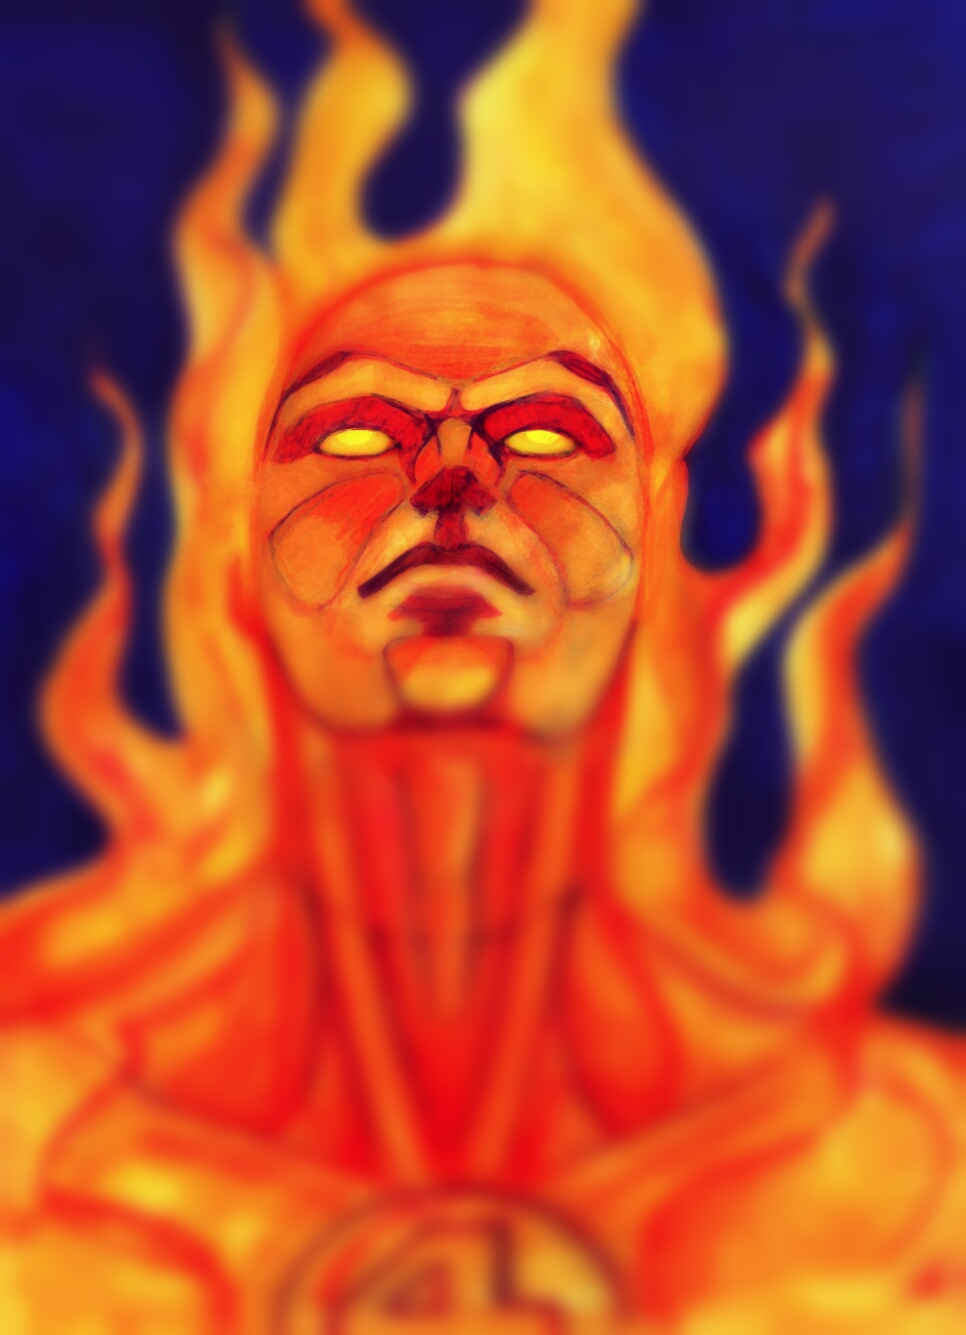 Johnny Storm,The Human Torch edit